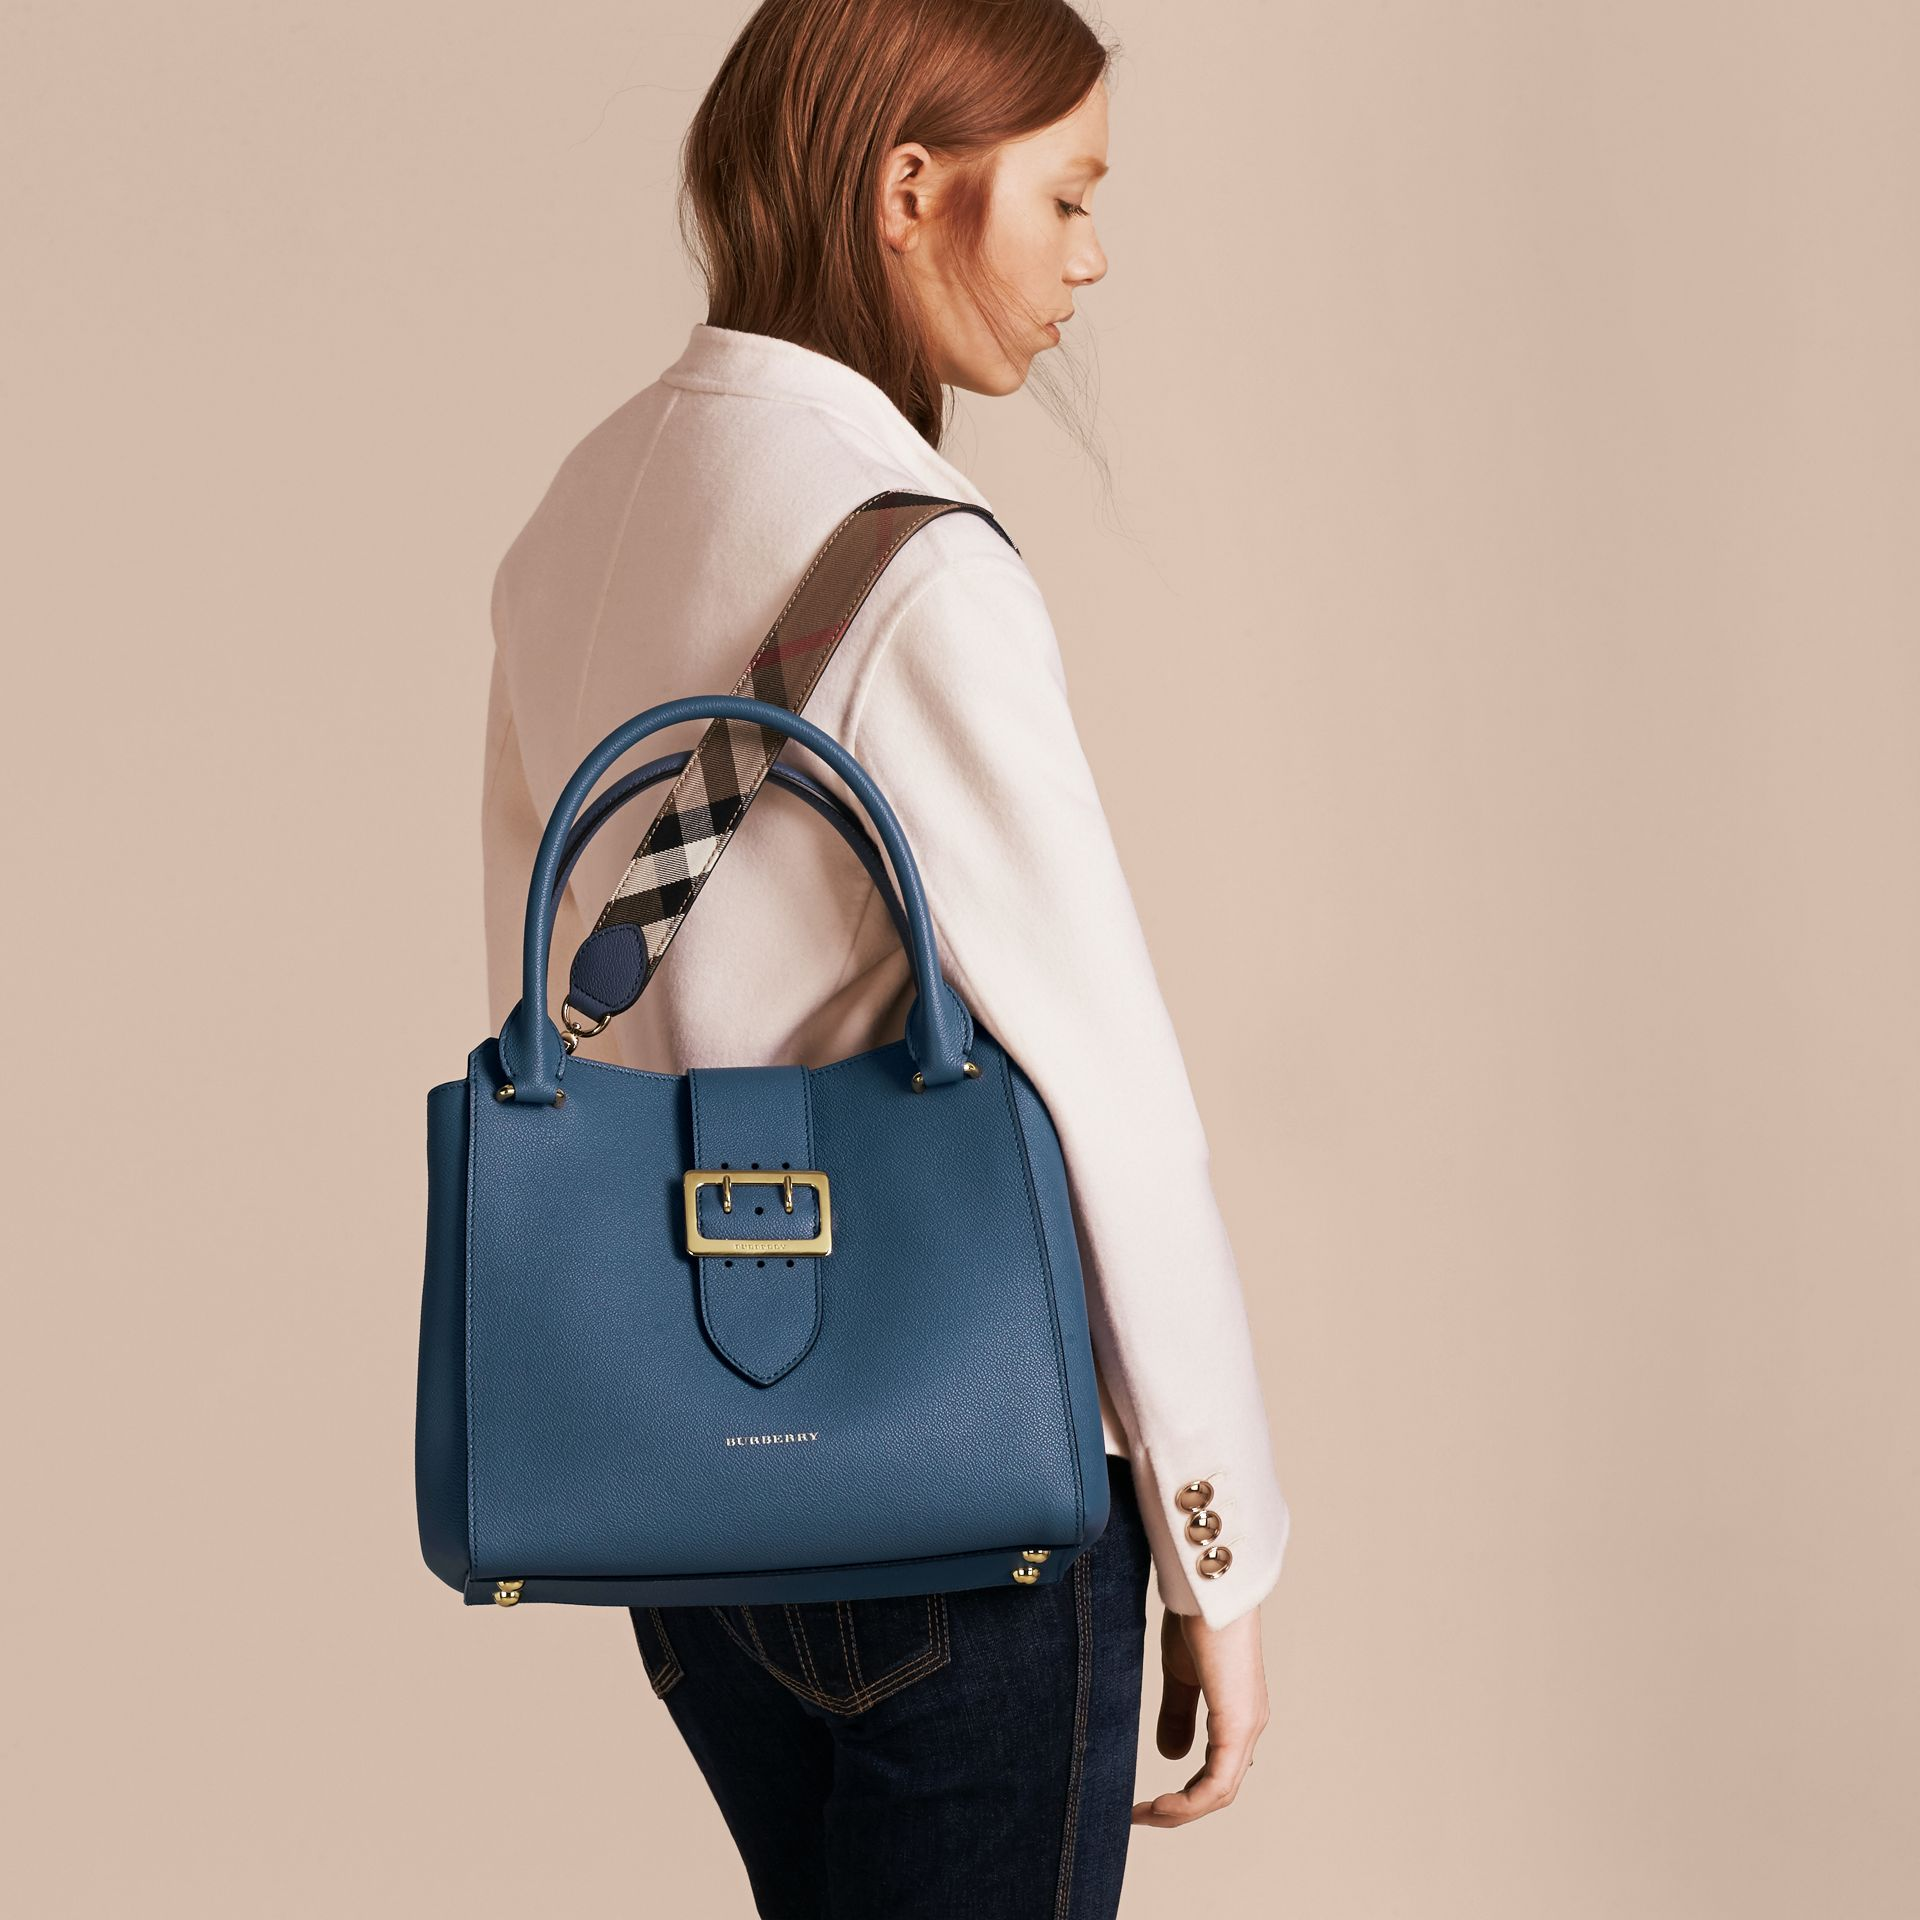 The Medium Buckle Tote in Grainy Leather in Steel Blue - Women | Burberry Australia - gallery image 4